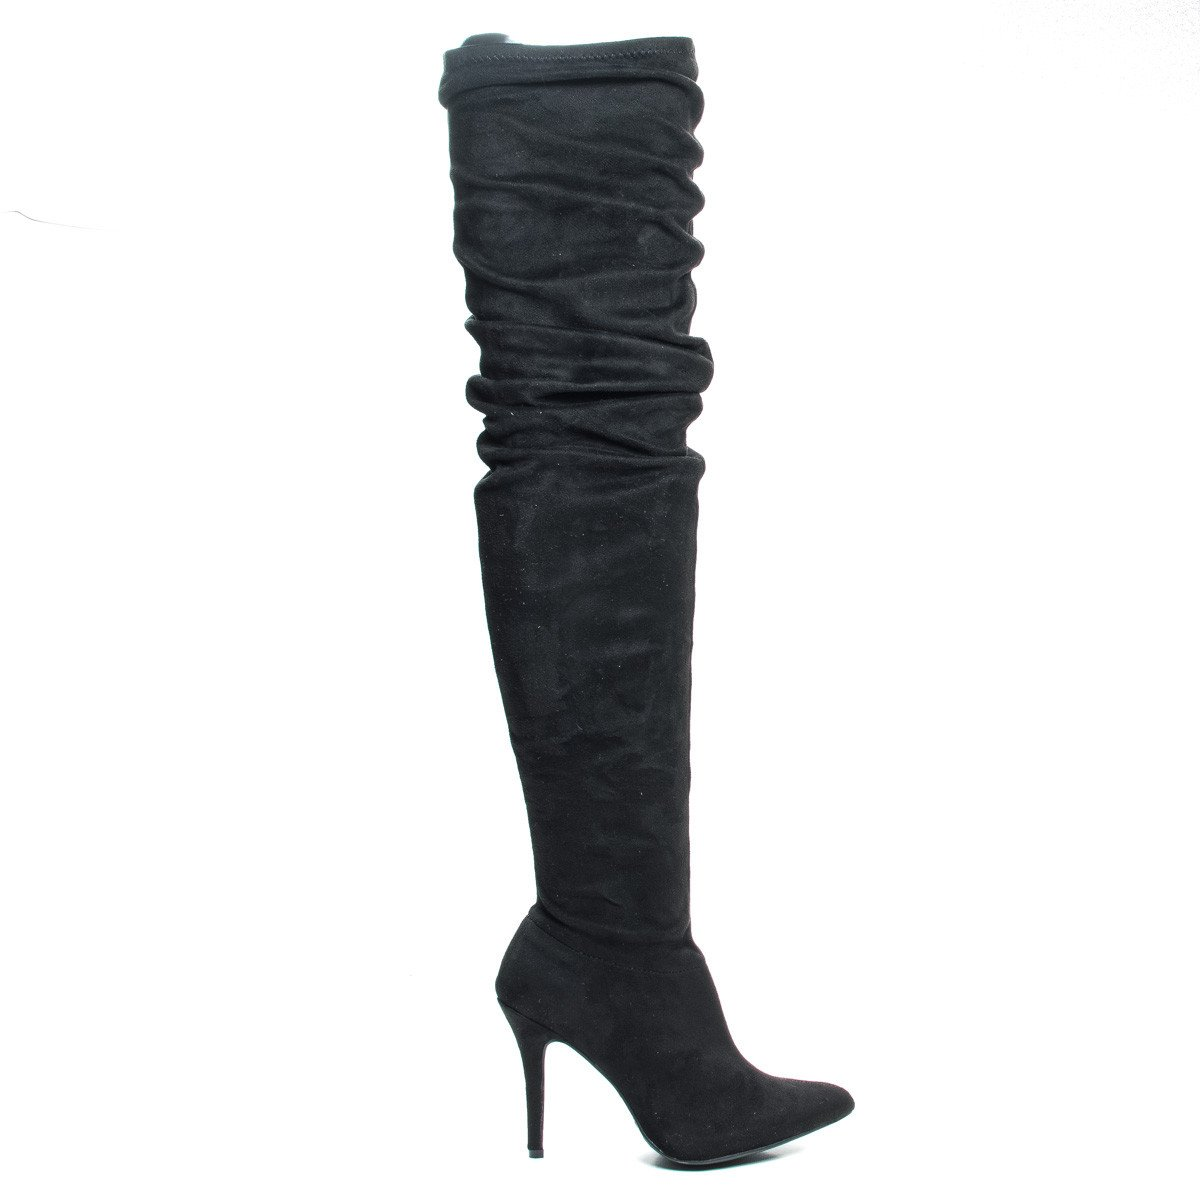 Monet23v by Anne Michelle, Thigh High Wrinkled High Heel Dress Boots